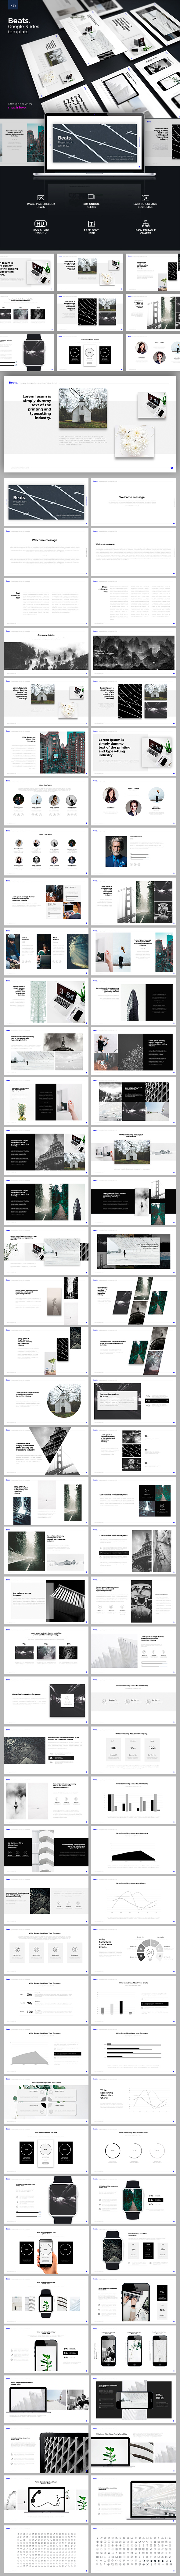 Beats Google Slides - Google Slides Presentation Templates